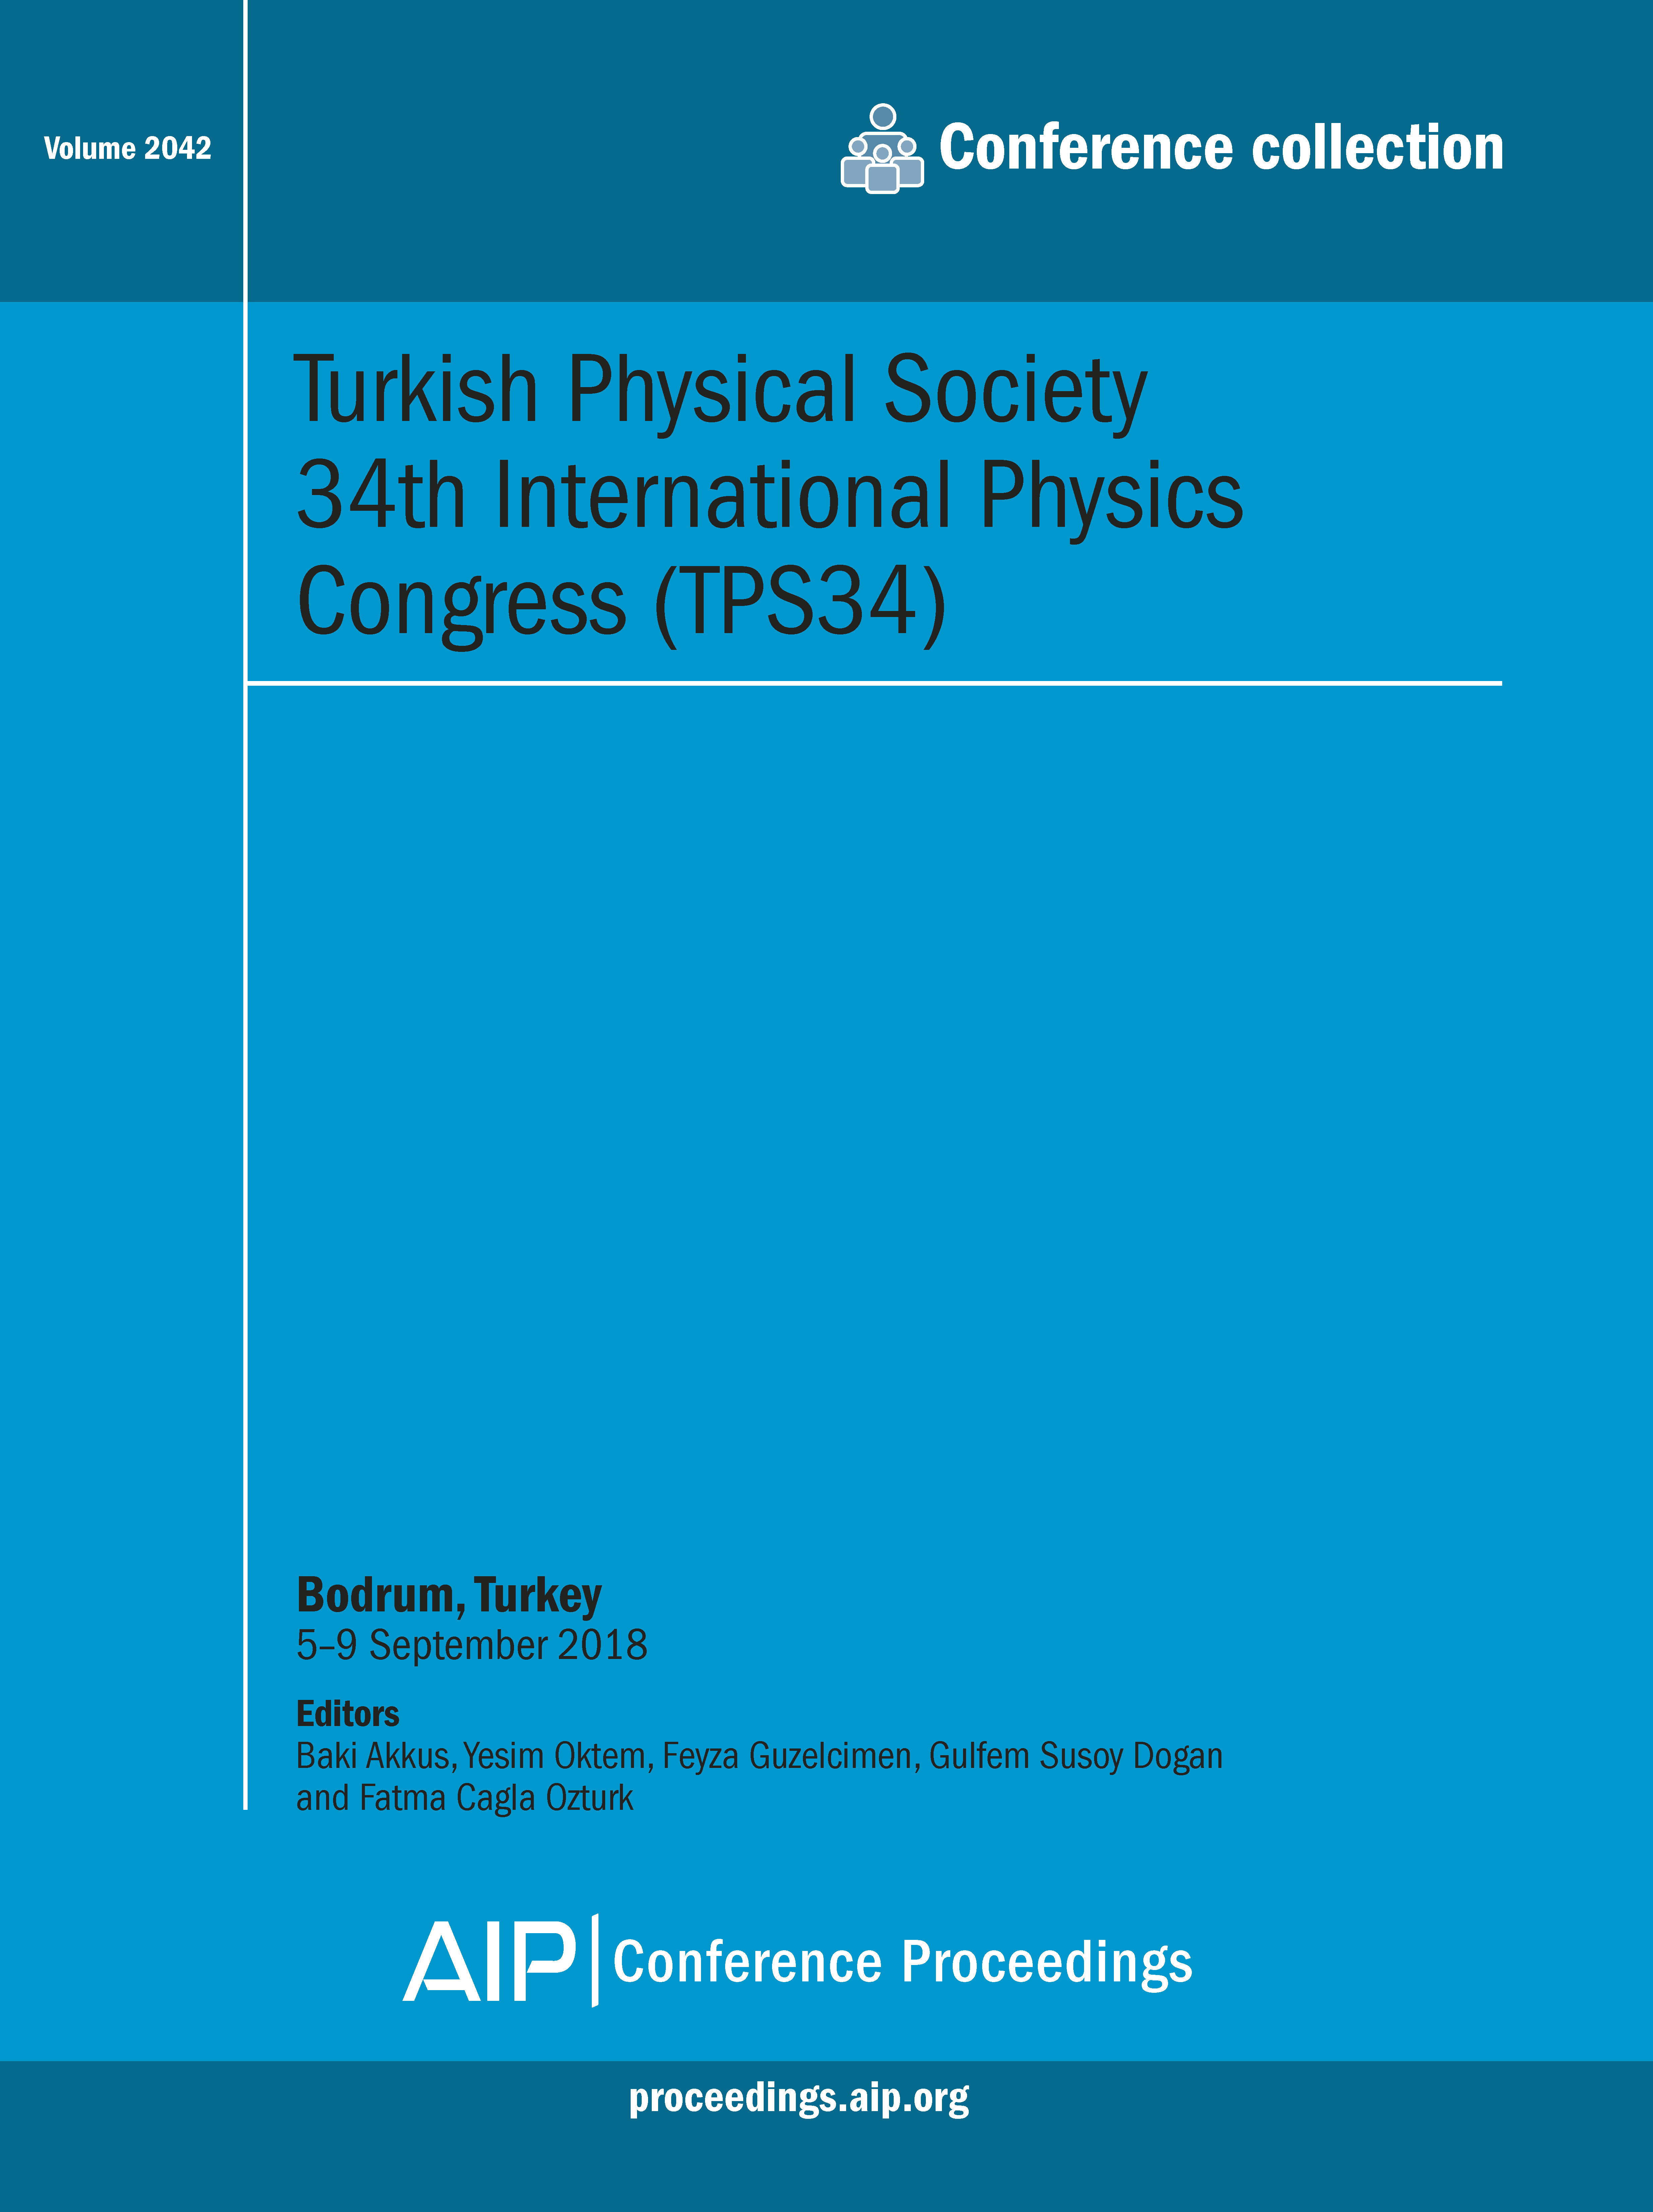 Volume 2042: Turkish Physical Society 34th International Physics Congress  (TPS34)